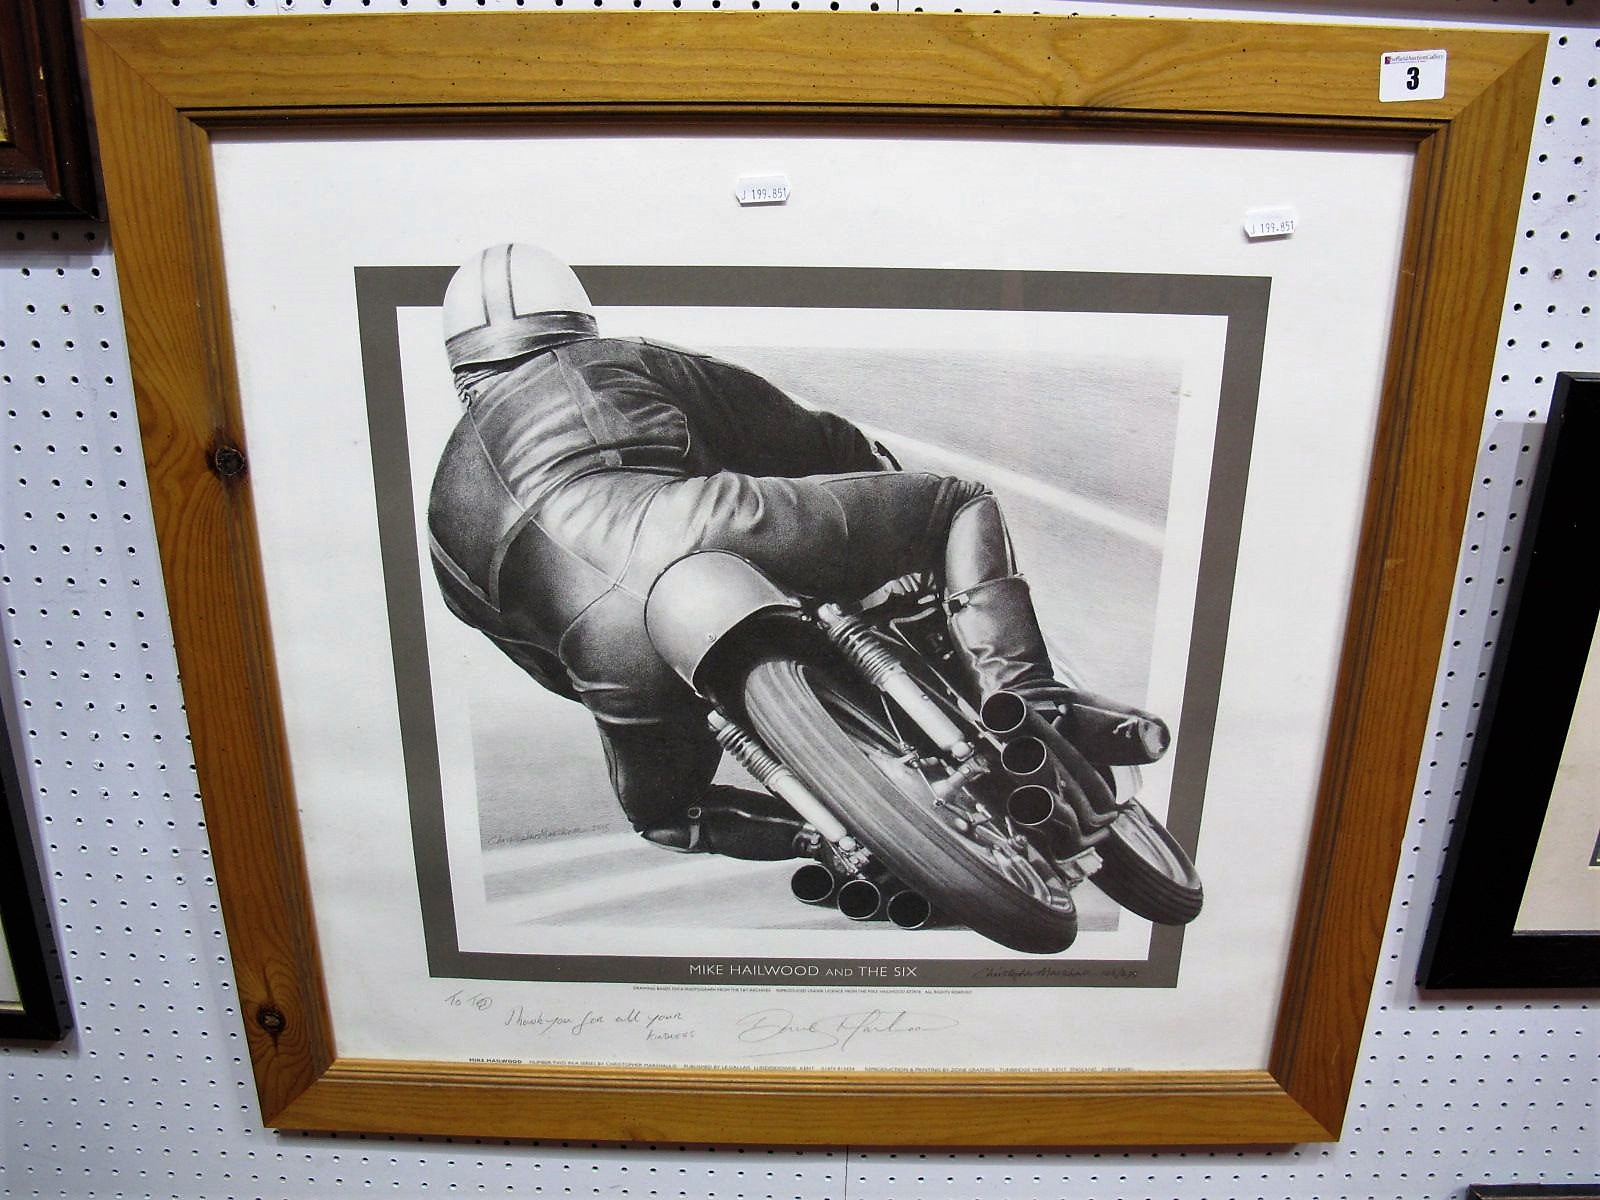 After Christopher Marshall- 'Mike Hailwood and the six, graphite signed by artist and Dave